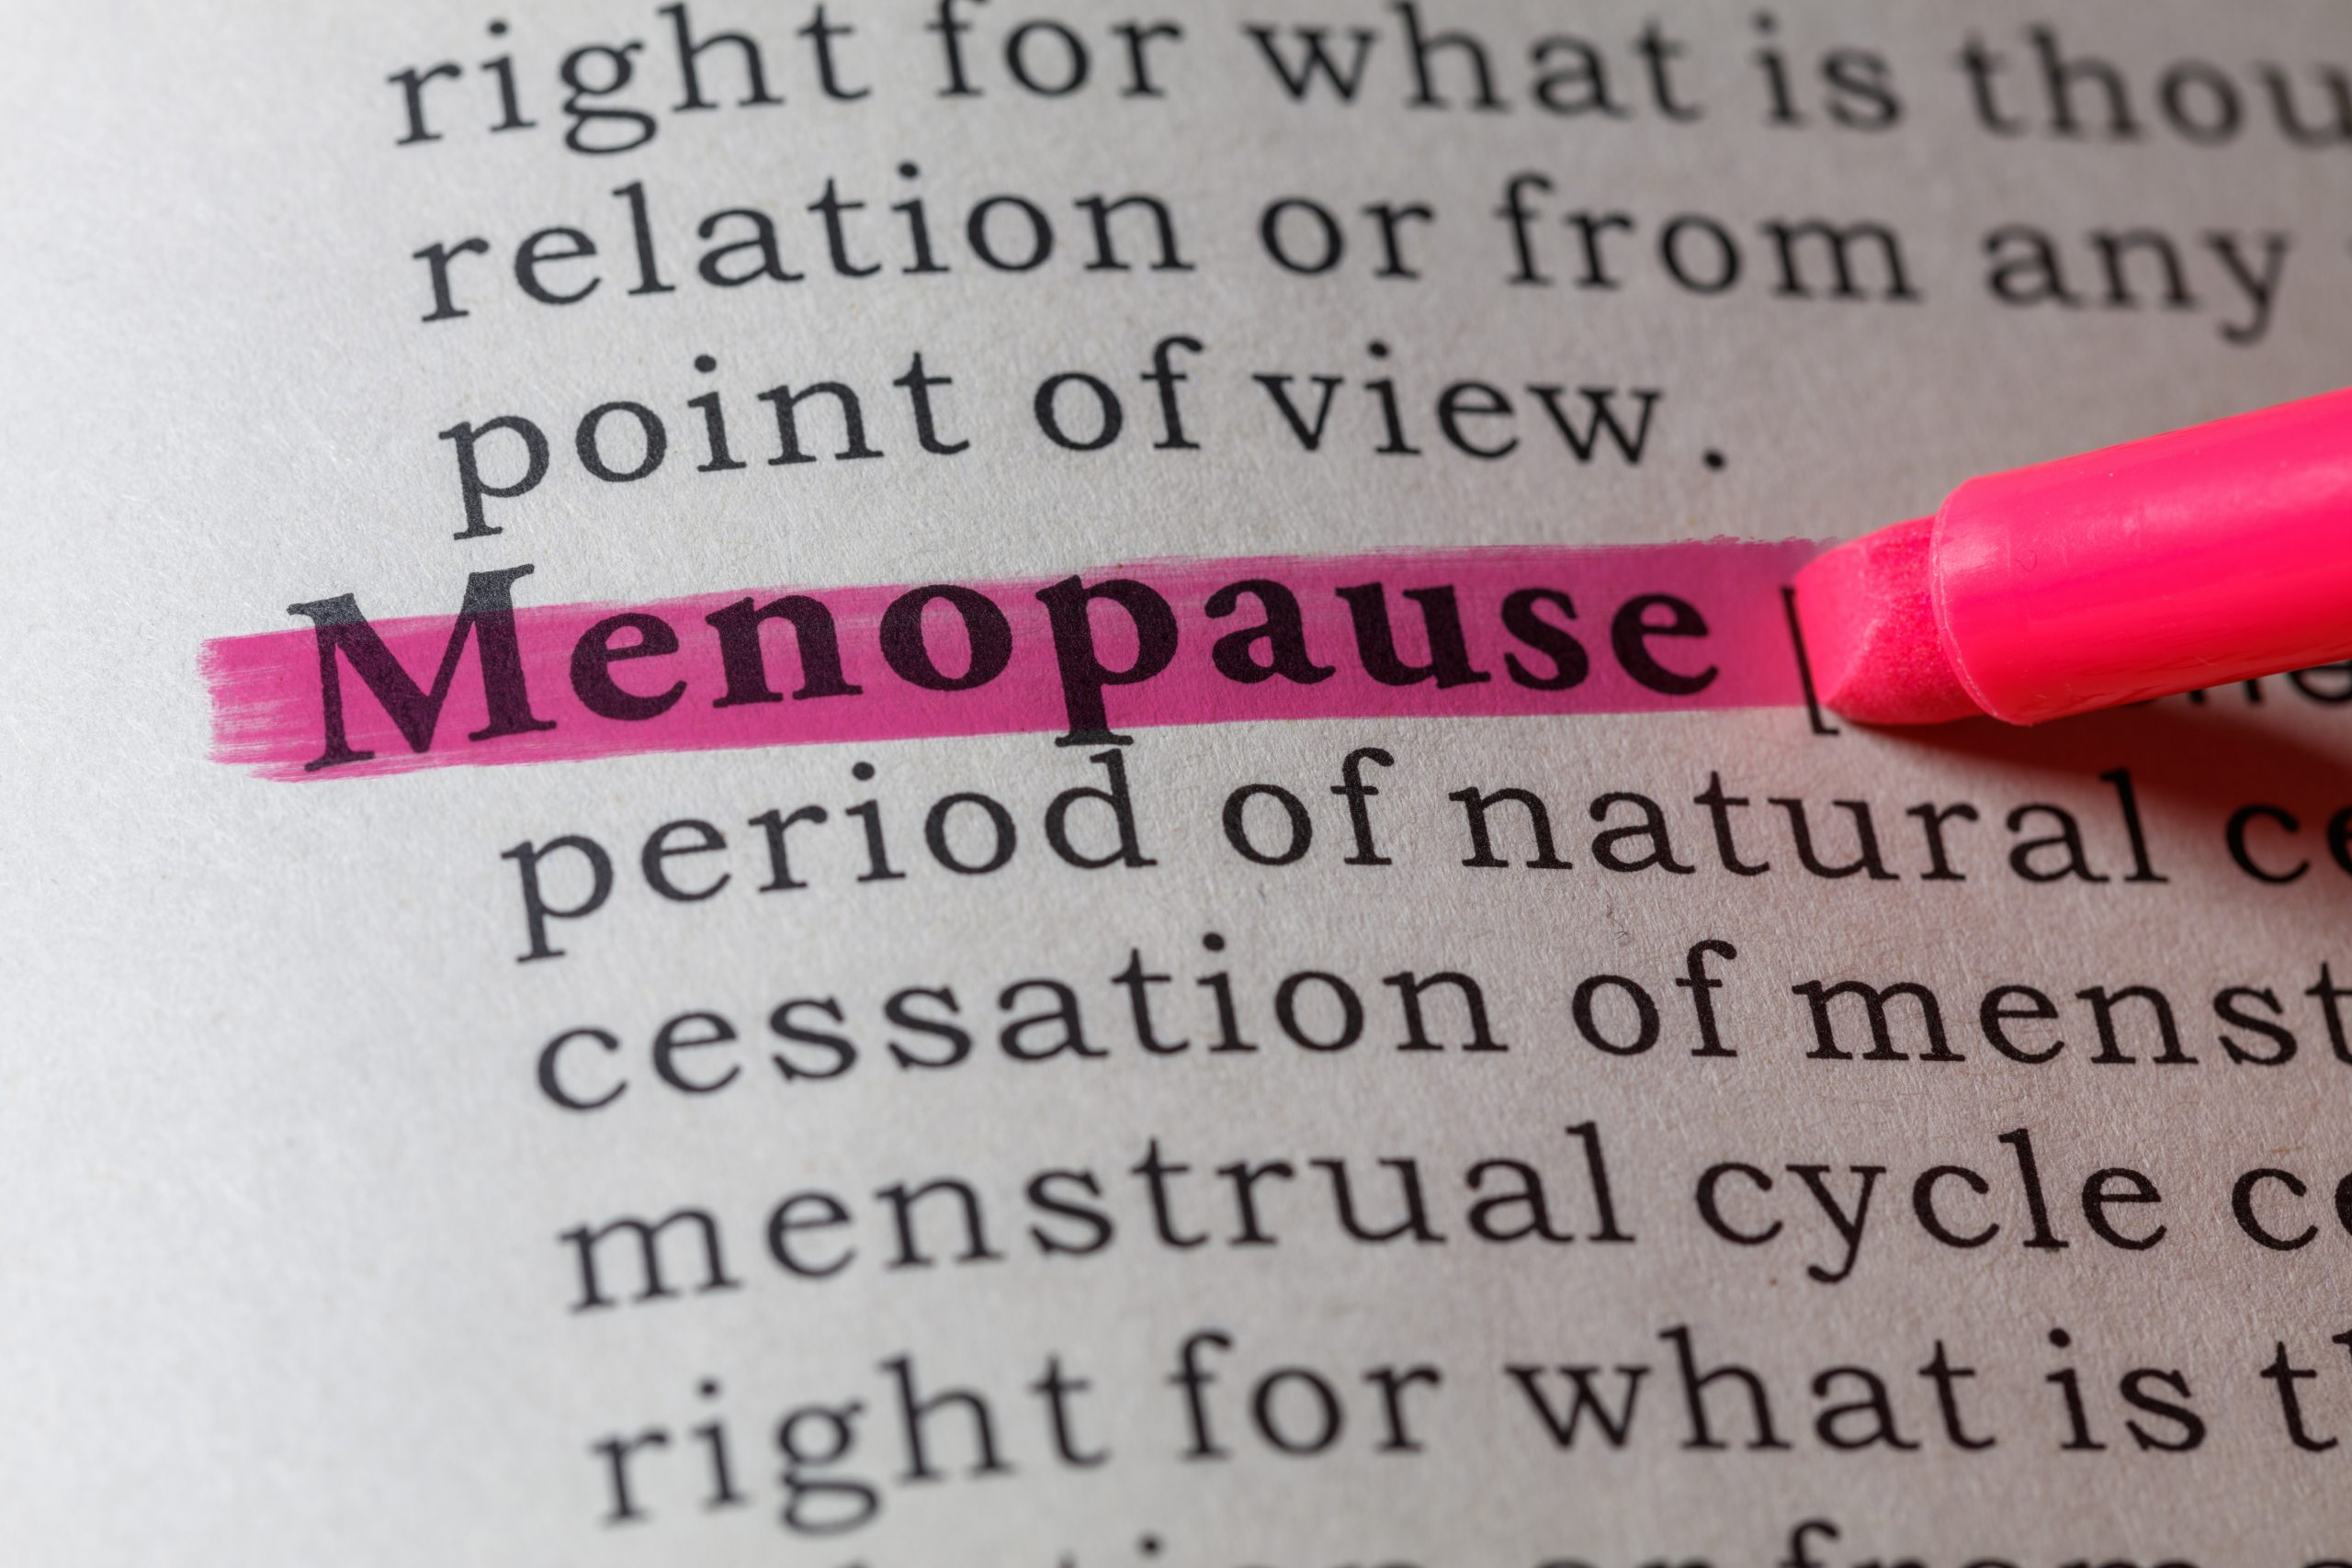 Menopause highlighted in dictionary